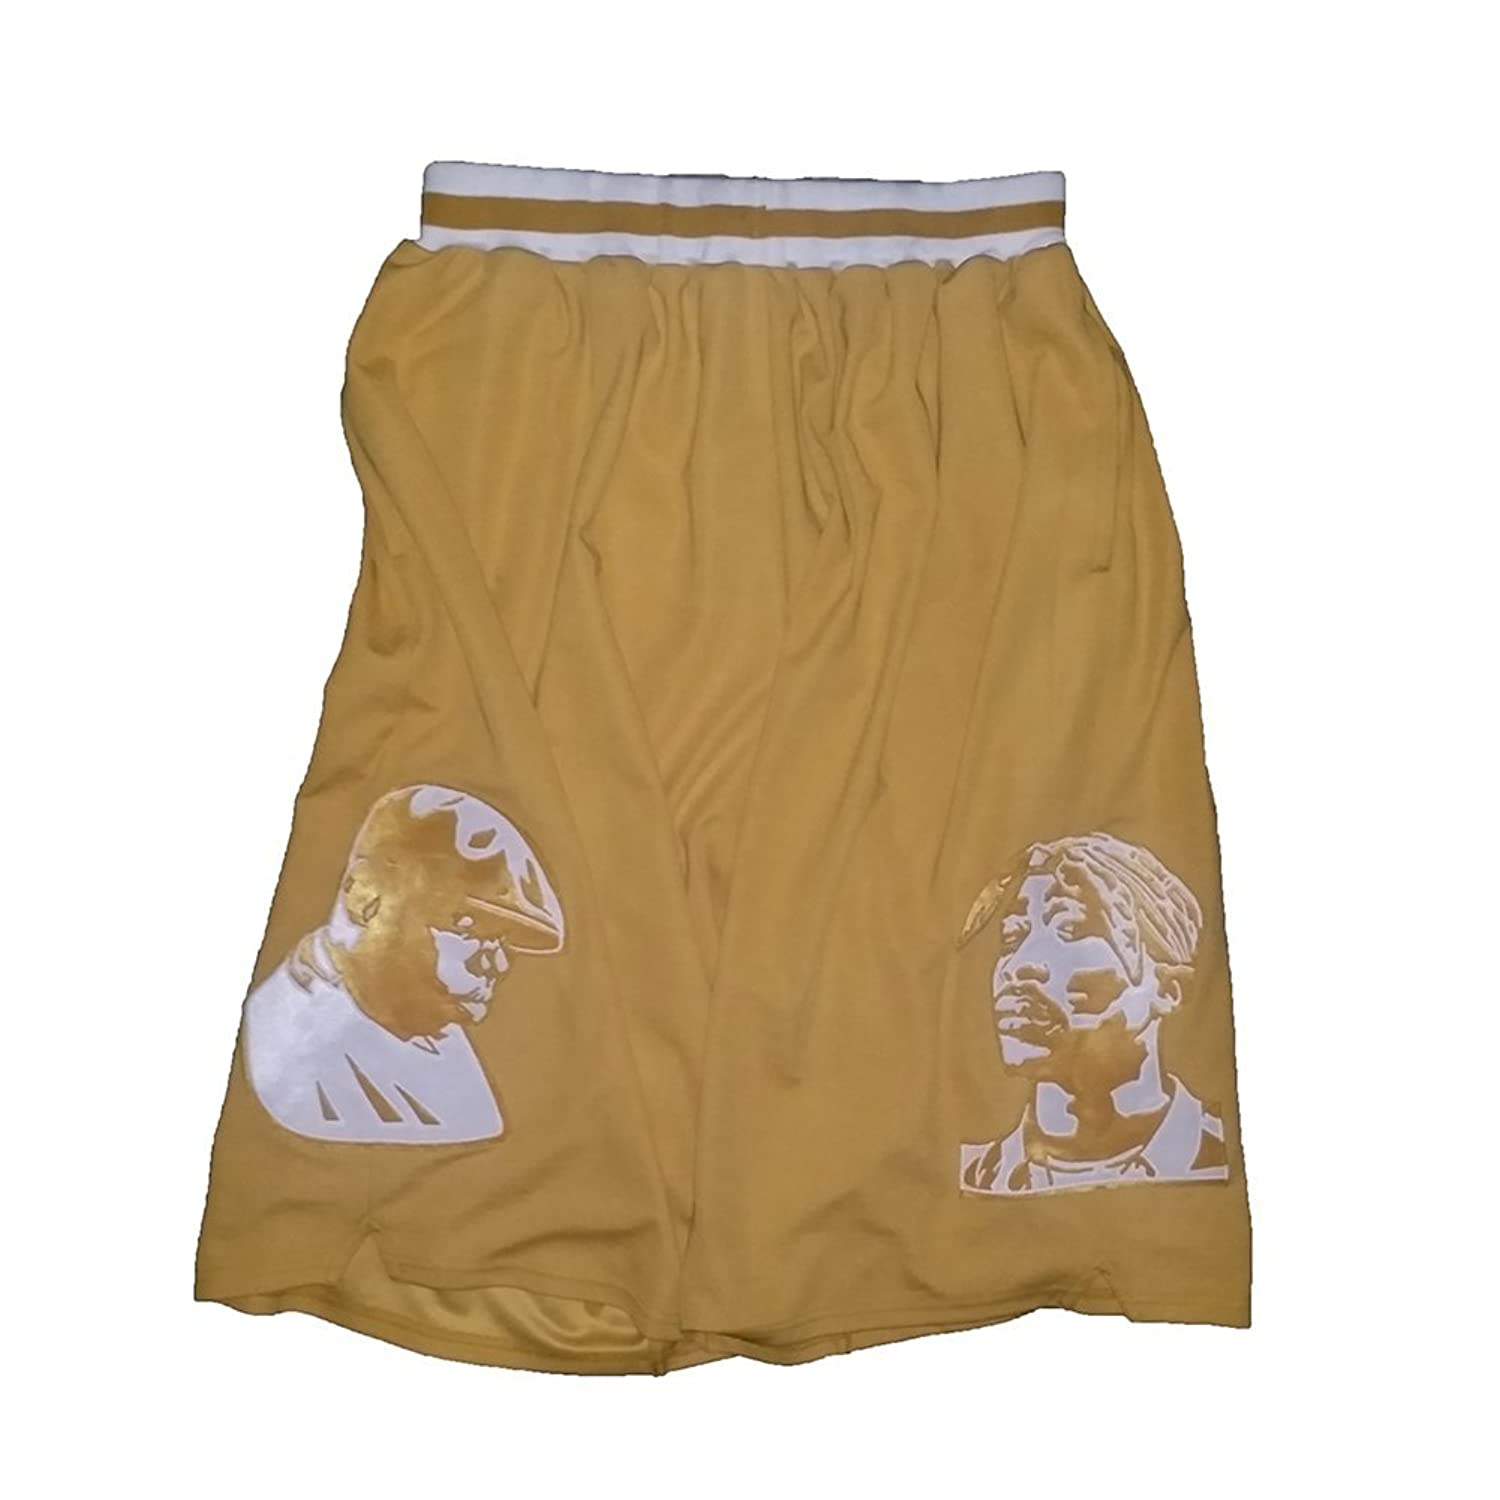 Mens basketball shorts on sale free shipping - Free Shipping Mperial Big Pac Men S Basketball Shorts